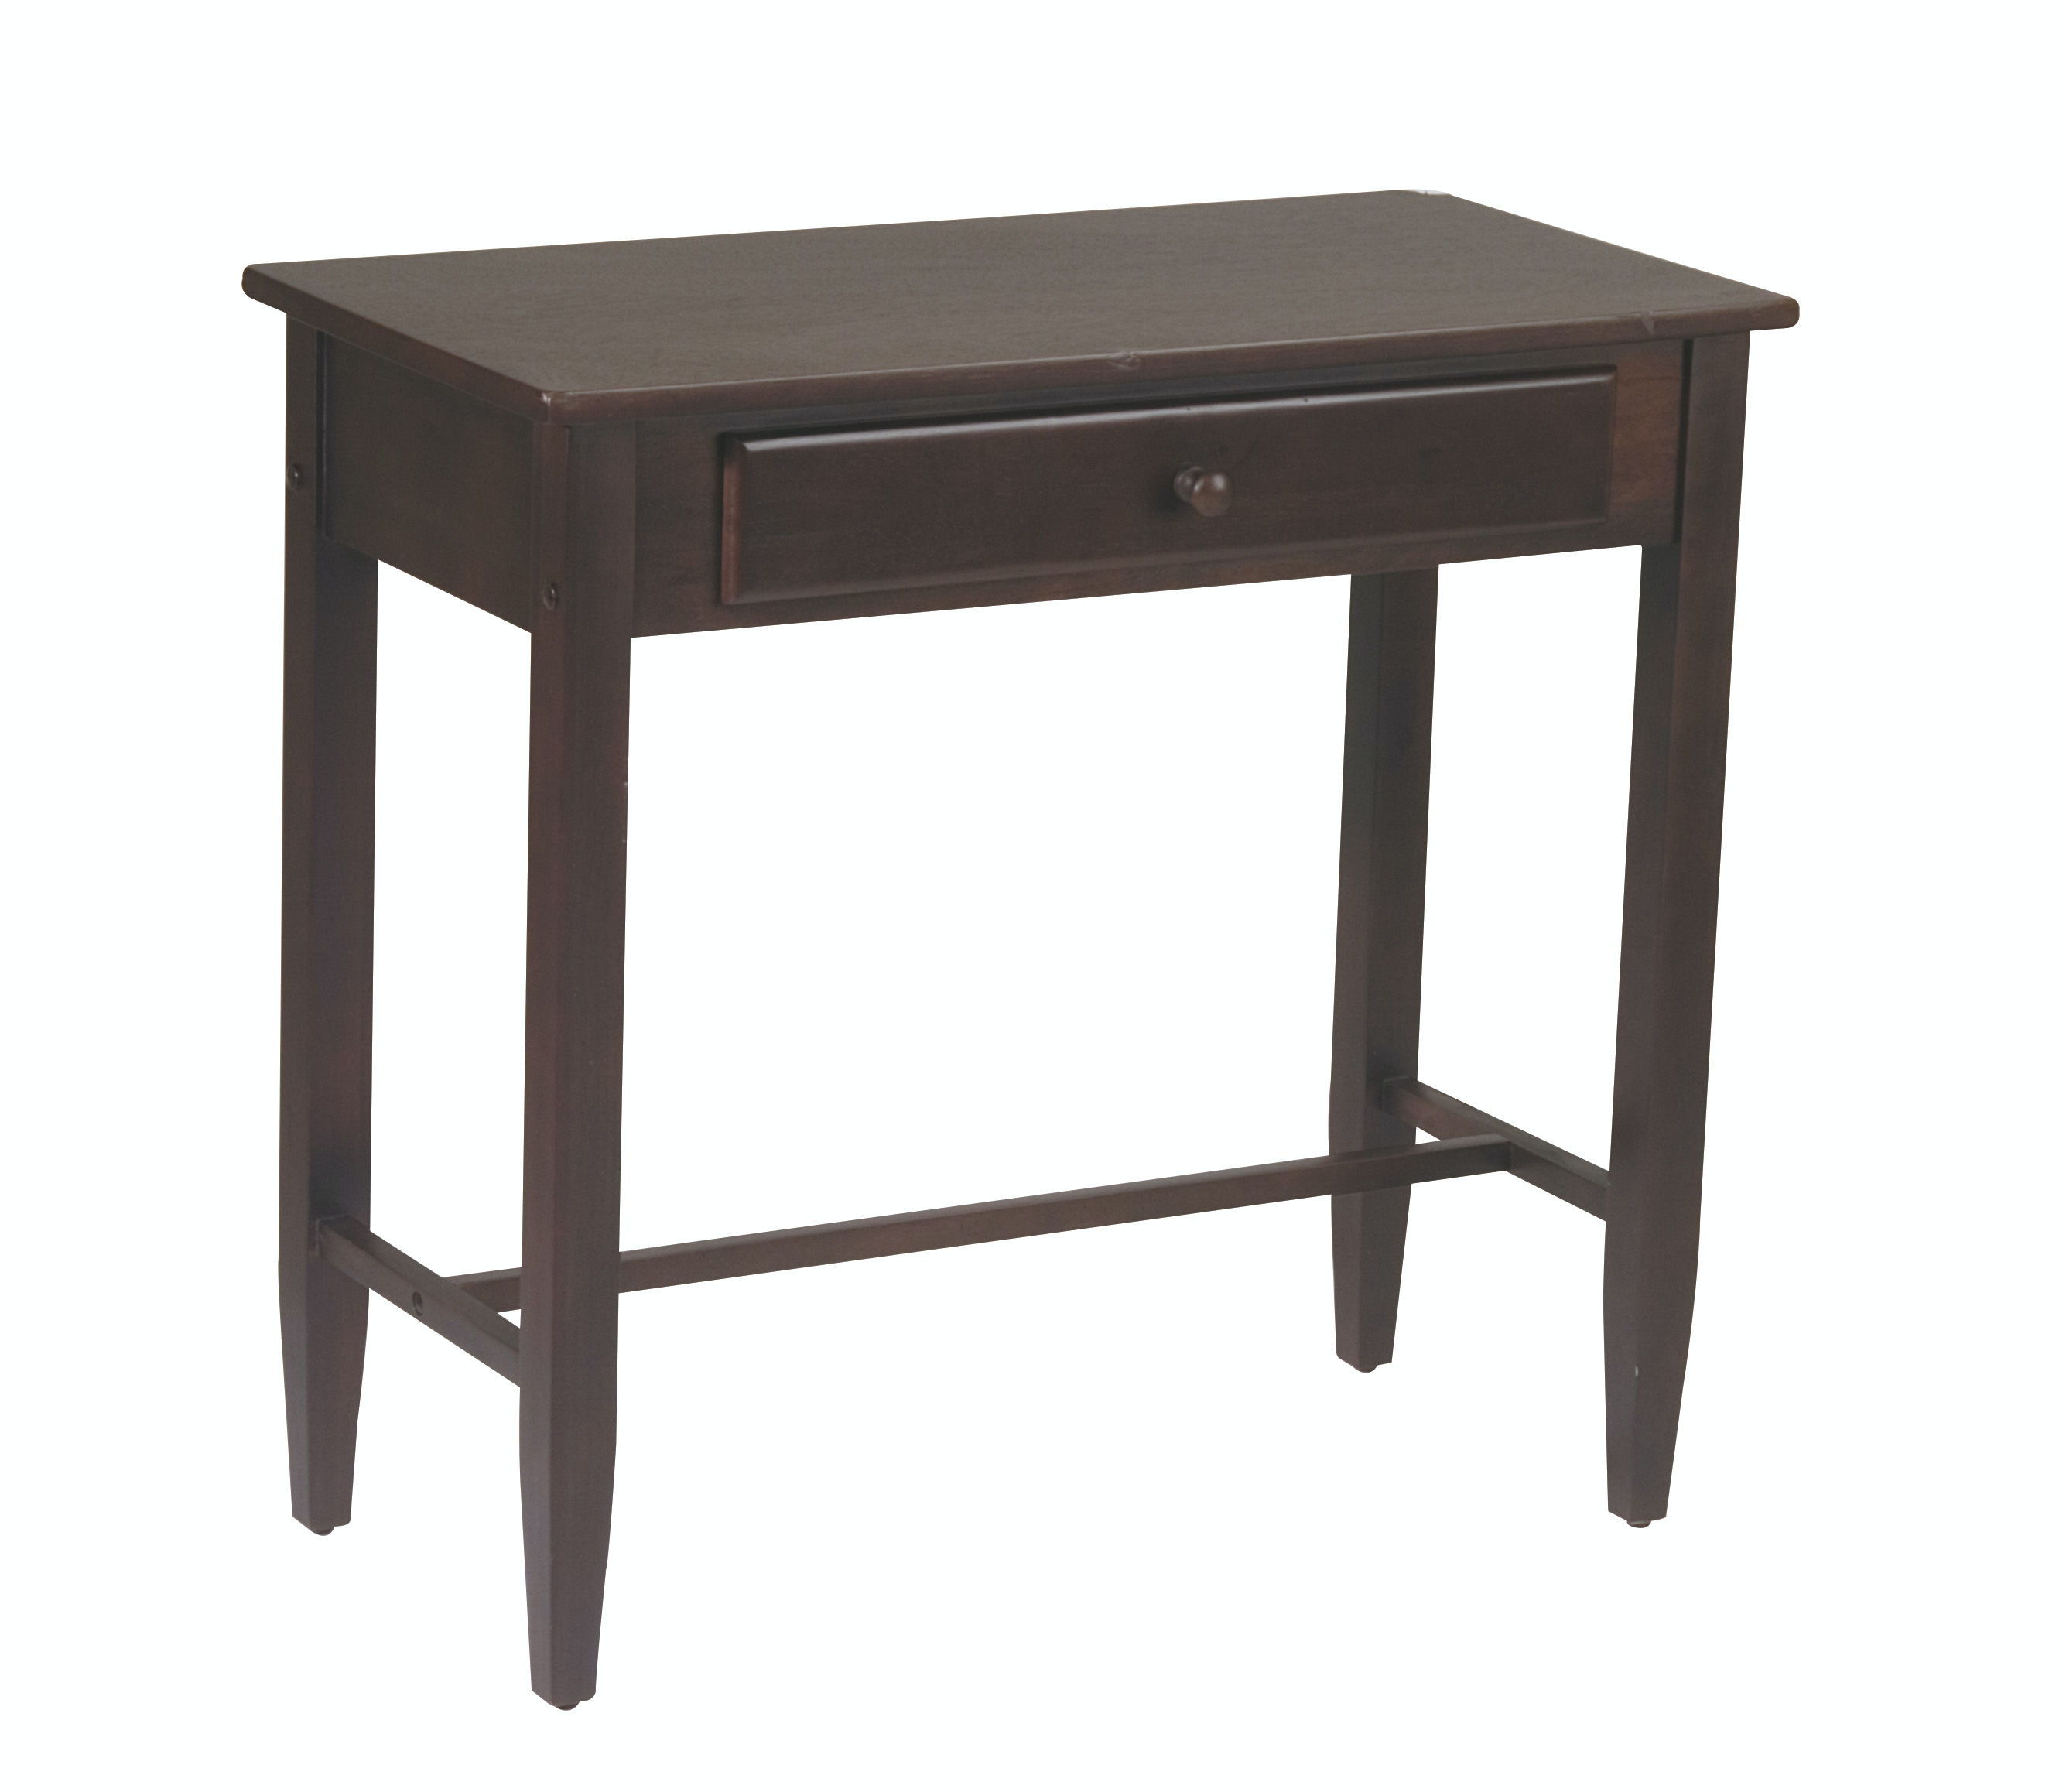 Office foyer designs Walls Office Star Products Home Office Foyer Table Es07 At Woodcrafters Furniture Itfranceinfo Office Star Products Home Office Foyer Table Es07 Woodcrafters